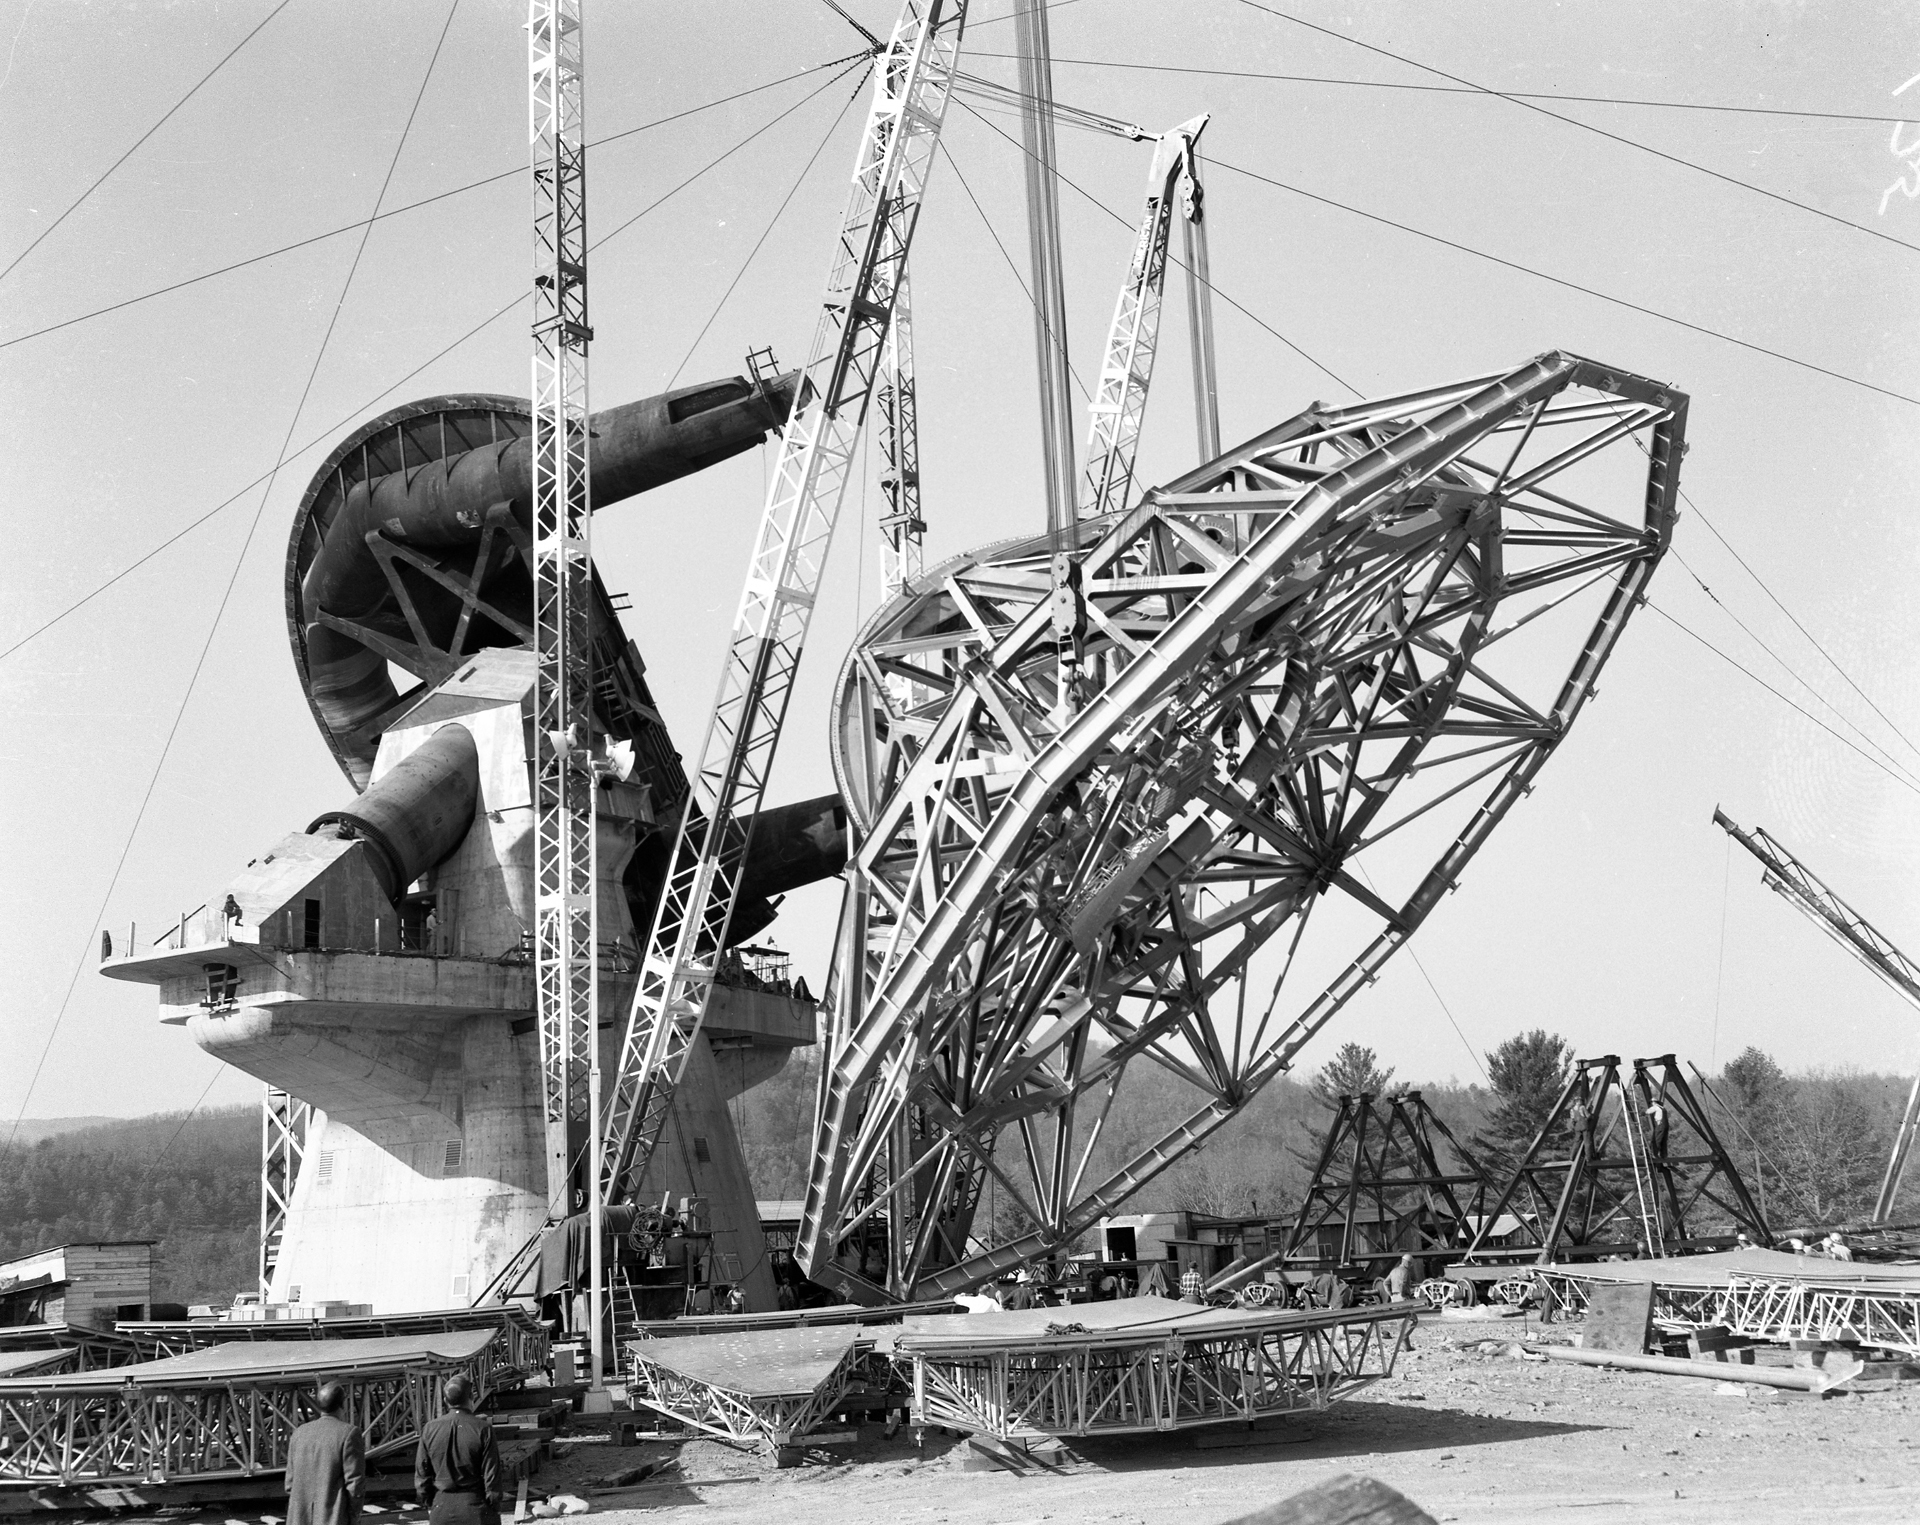 Construction of the 140-foot telescope